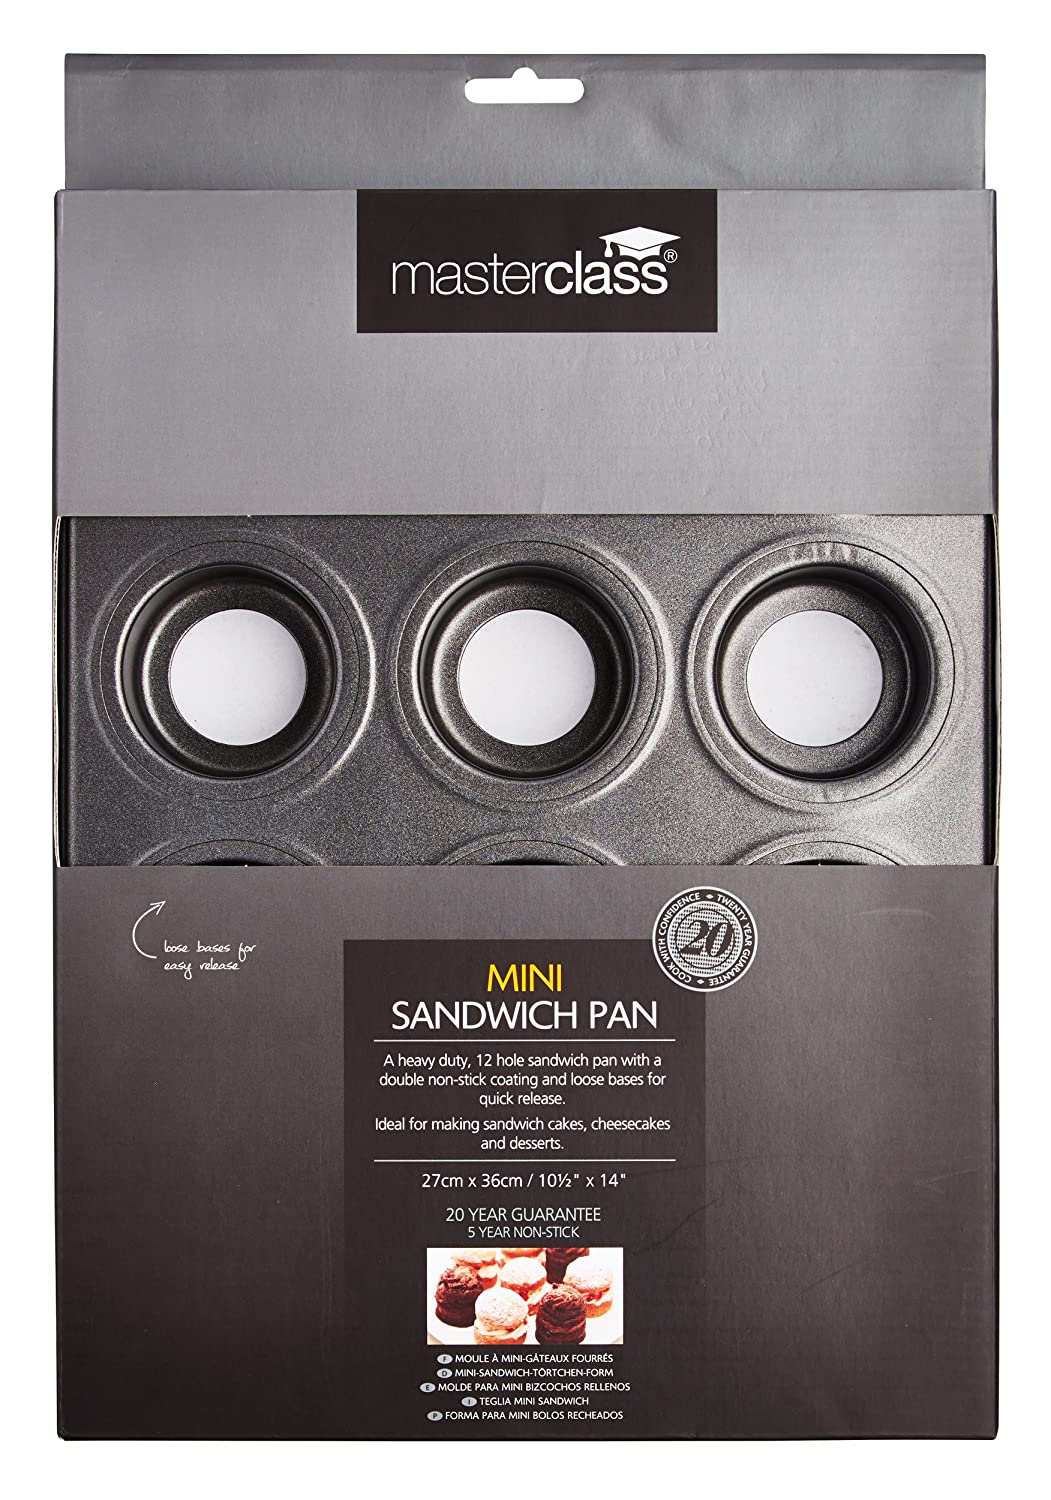 Amazon.com: Kitchencraft Masterclass 12-hole Non-stick Mini Sandwich Tin With Loose Bases, : Kitchen & Dining